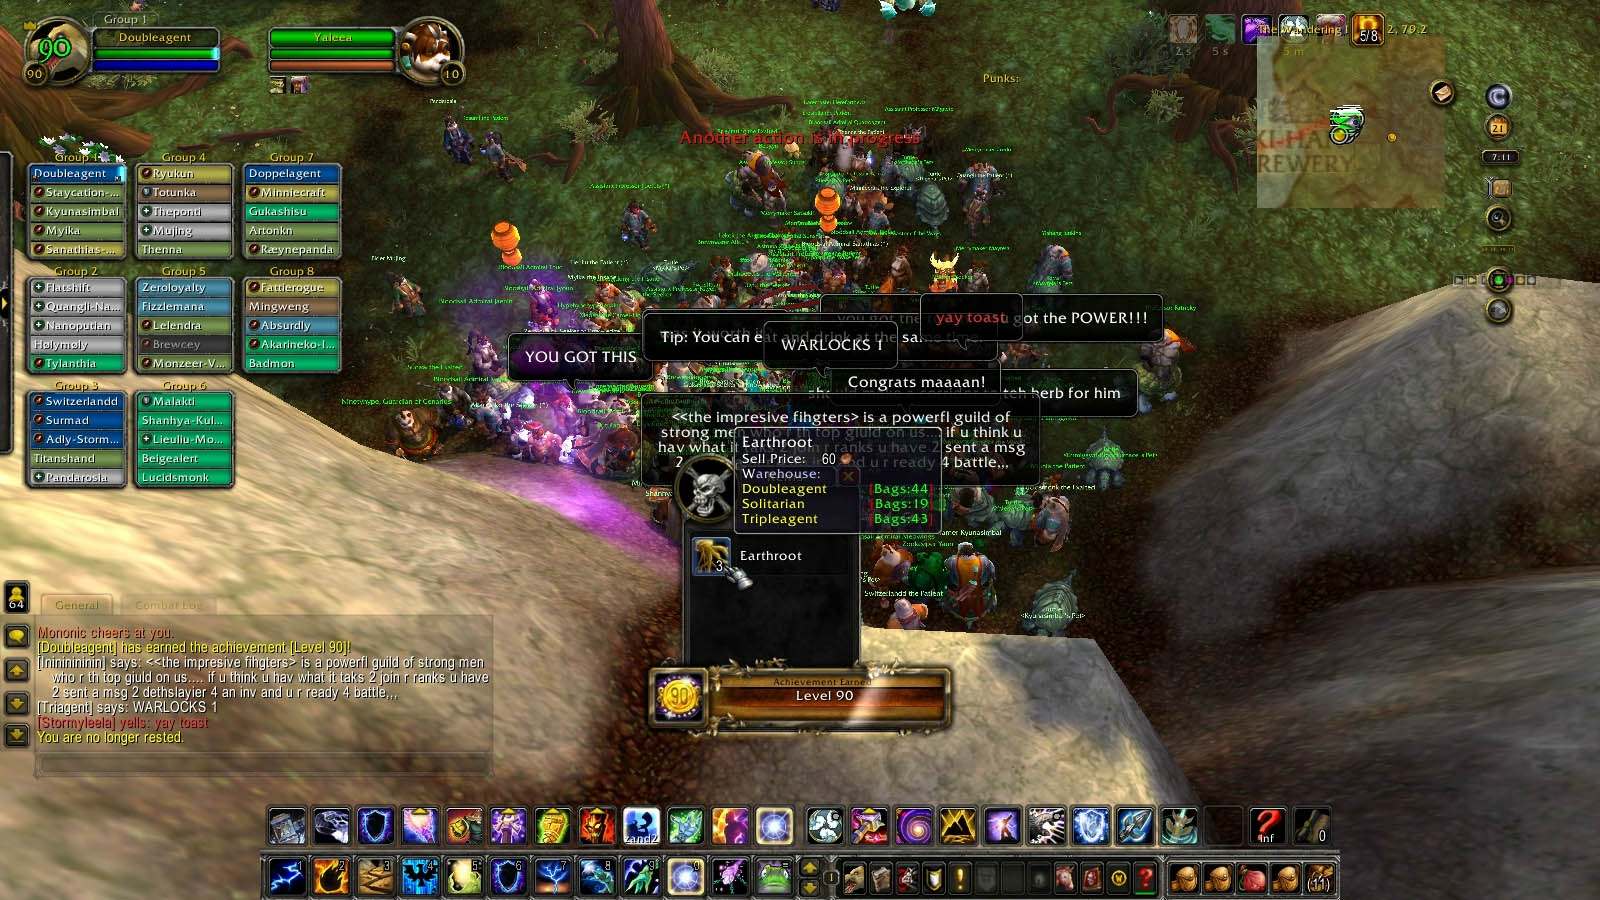 World of Warcraft player makes the longest, slowest grind to level 90